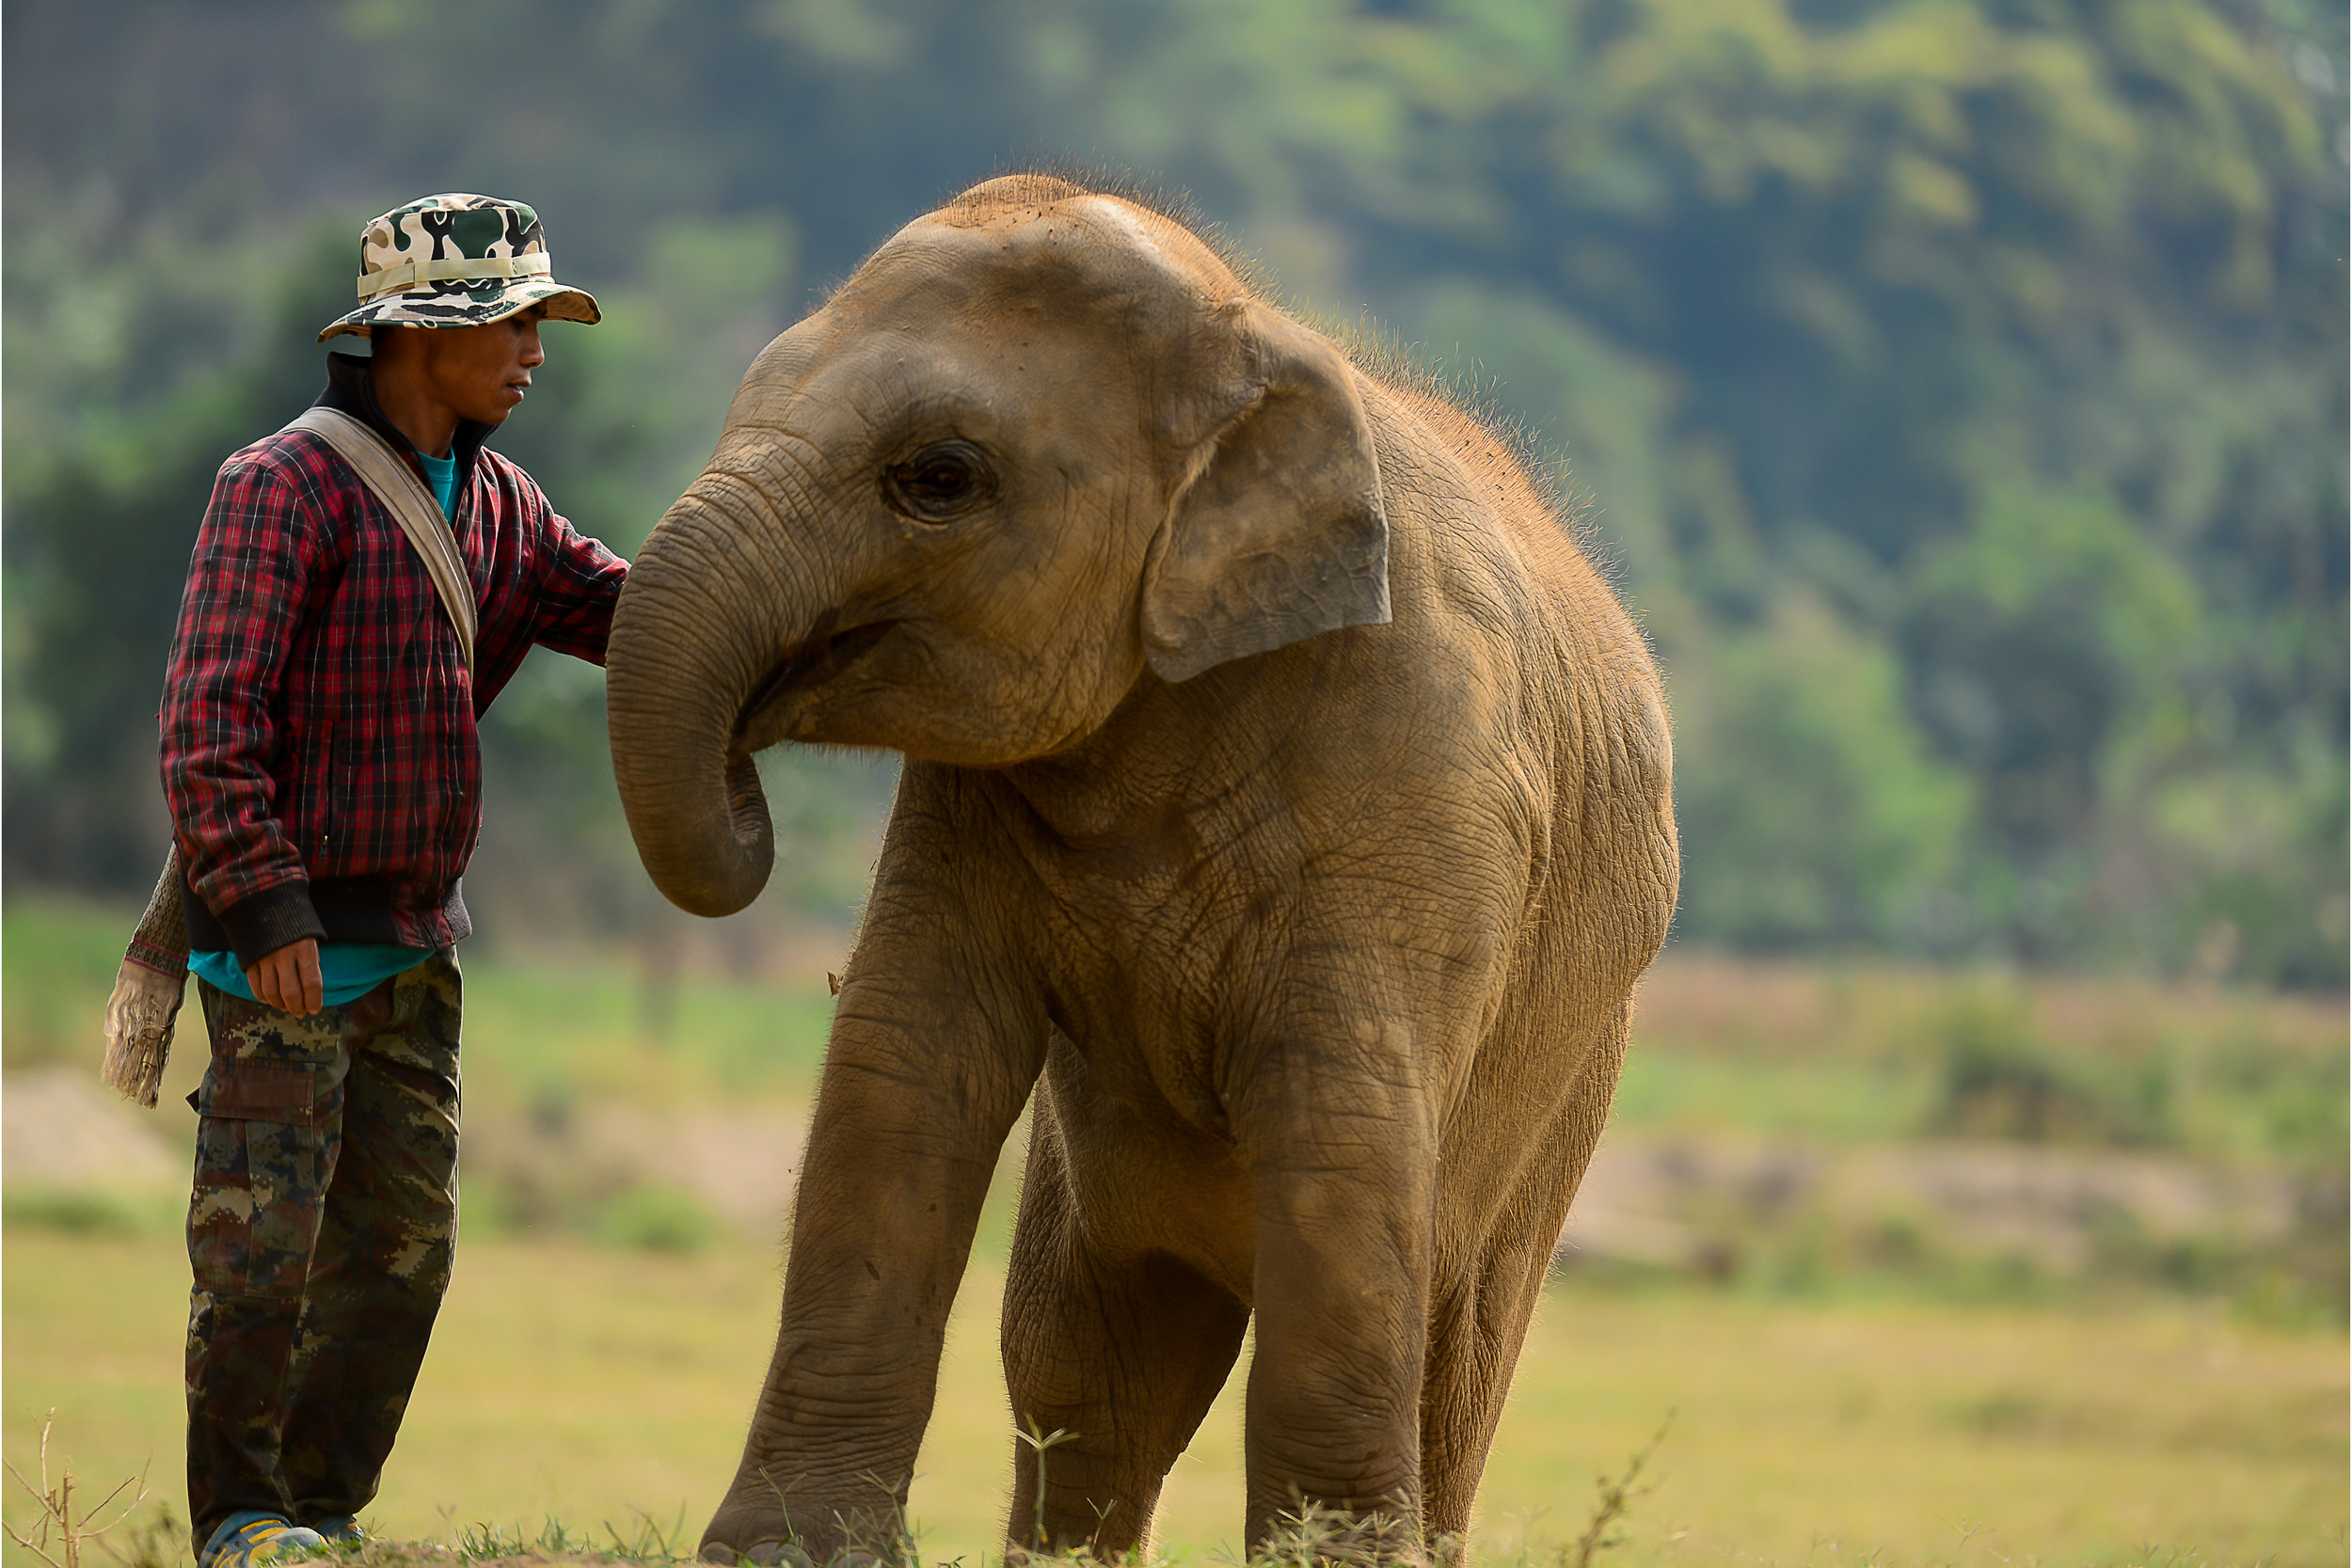 Elephant Mahout who cares for elephants